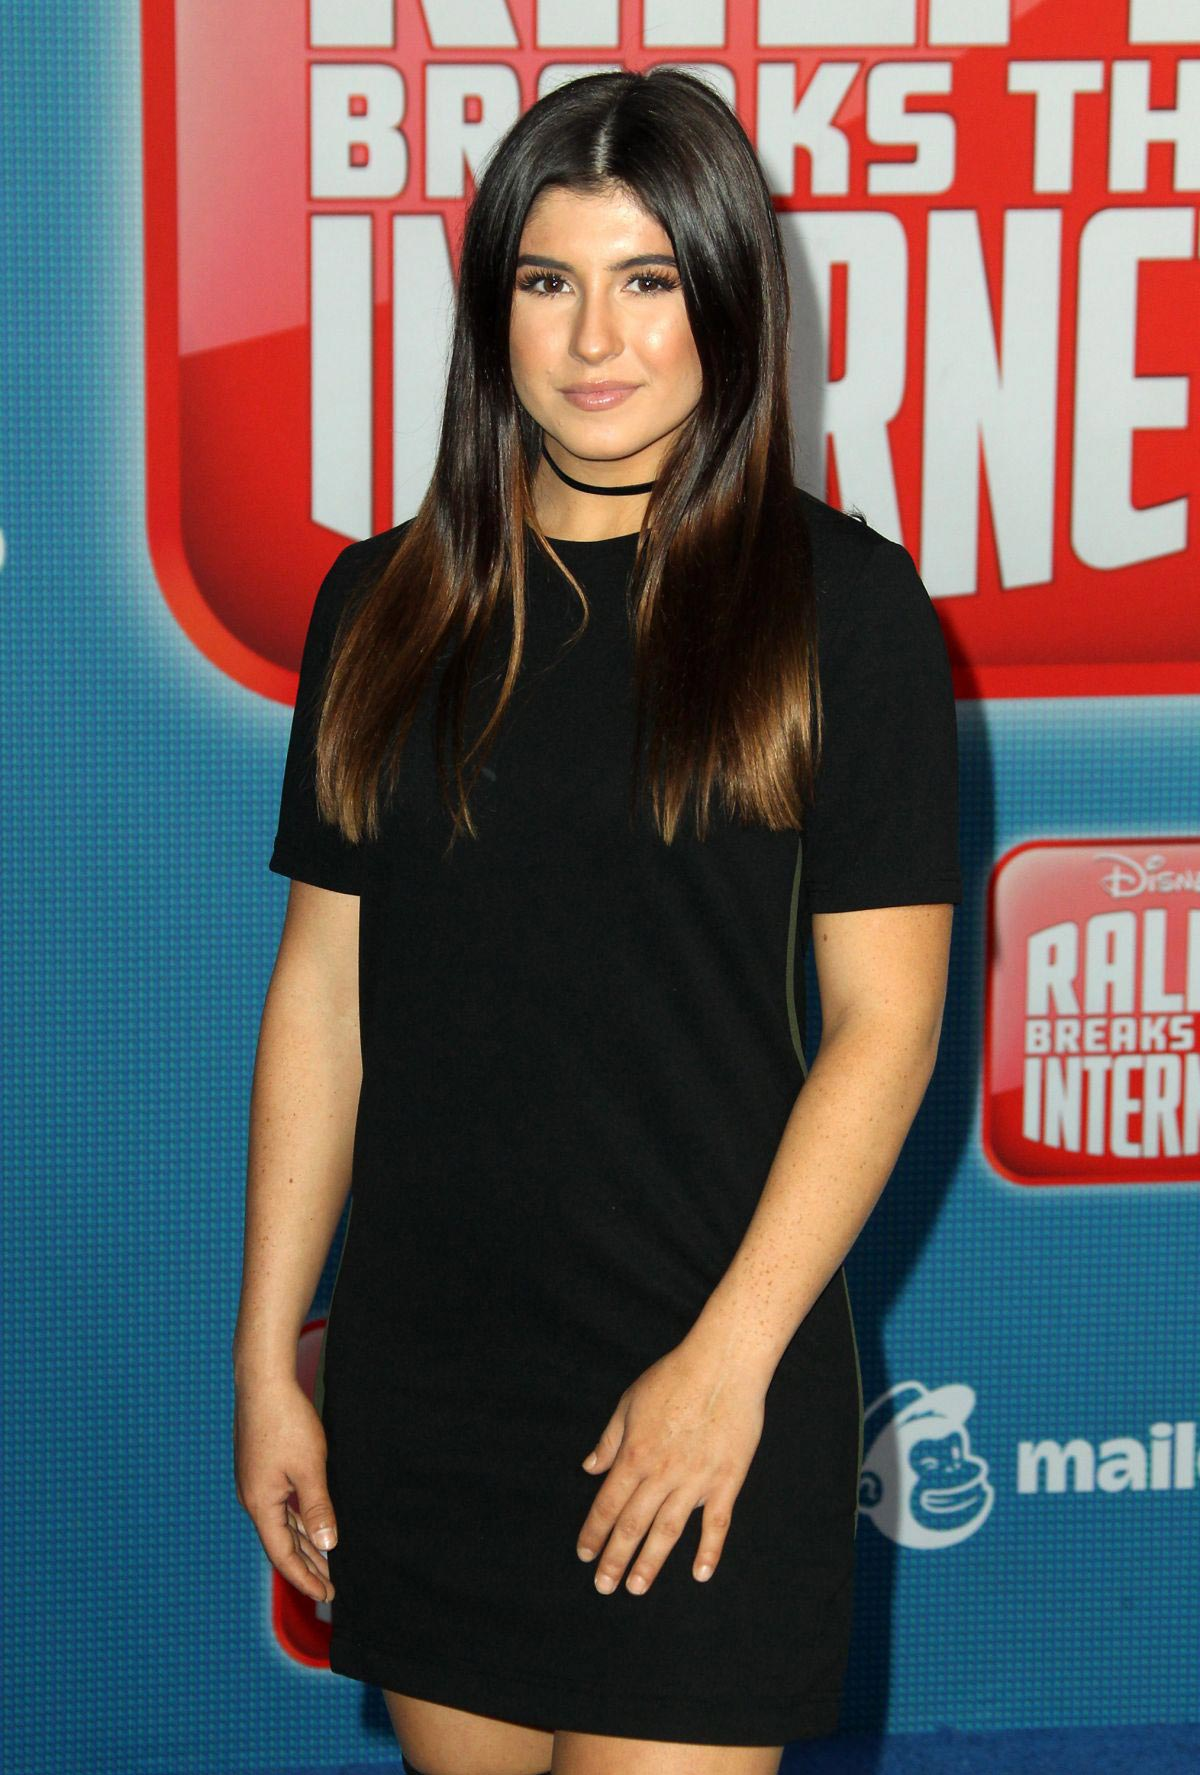 Hailie Deegan at Ralph Breaks the Internet Premiere in Hollywood 2018/11/05 1